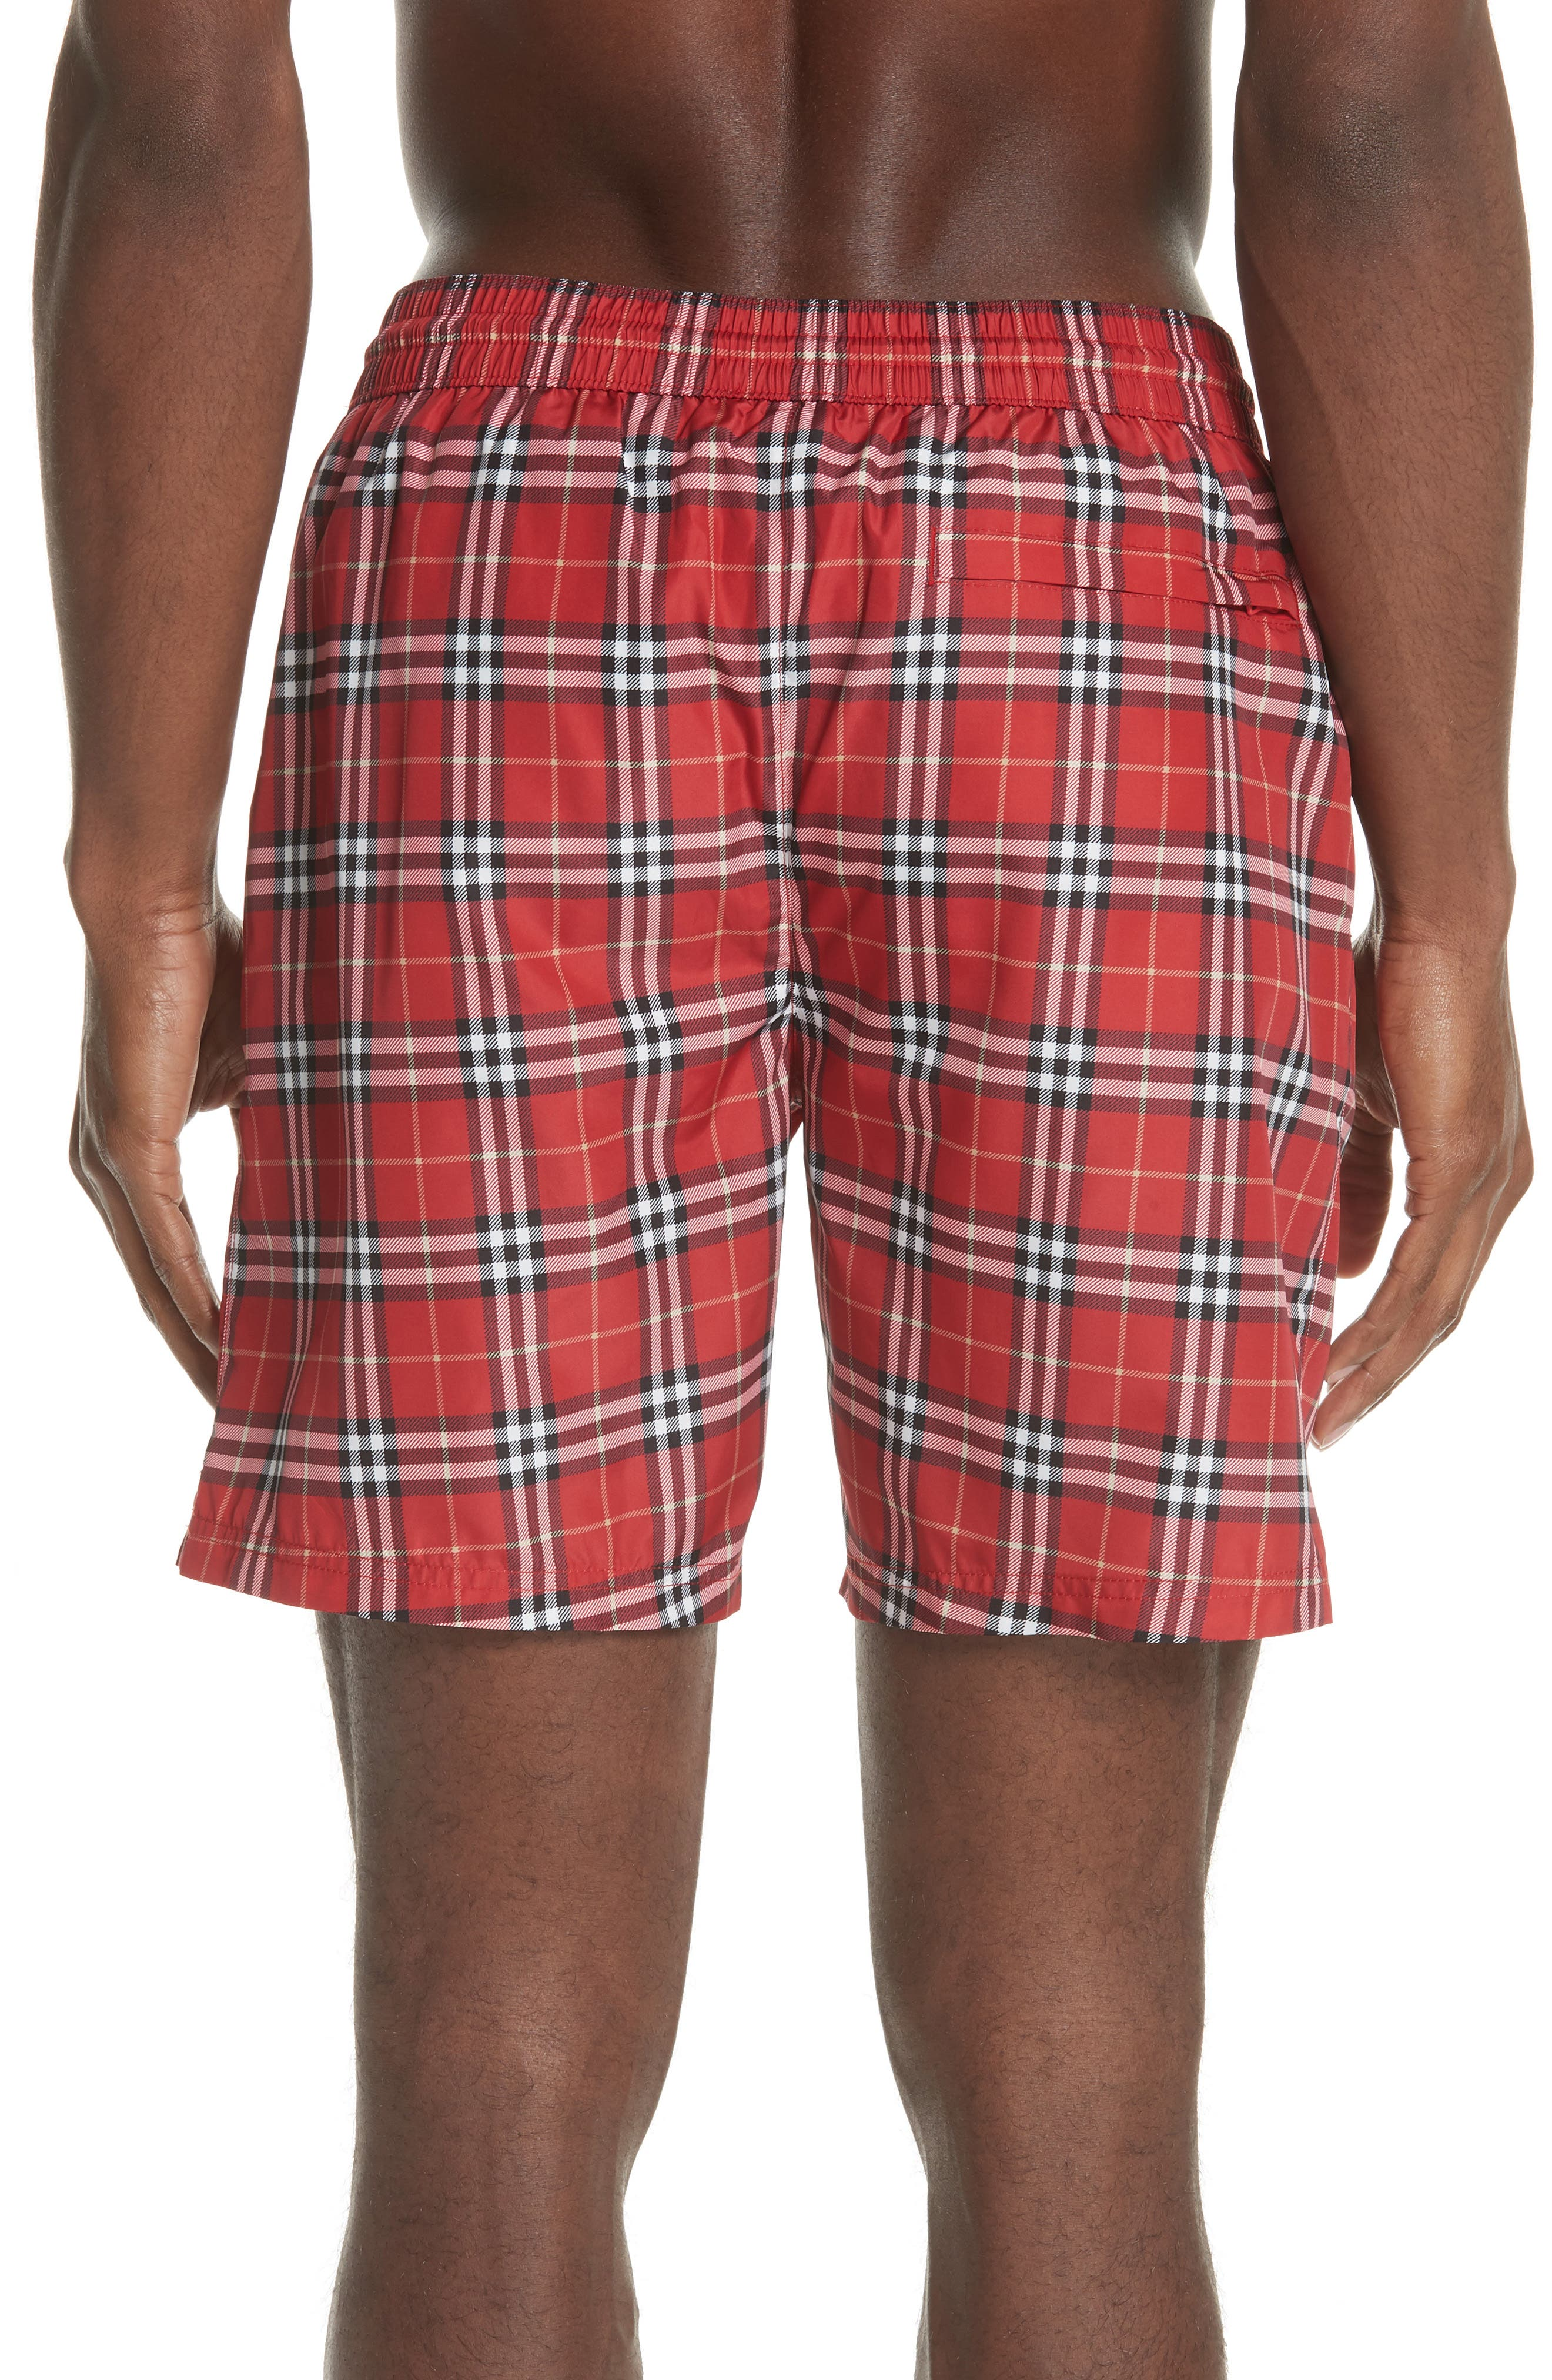 Guides New Check Swim Trunks,                             Alternate thumbnail 2, color,                             Parade Red